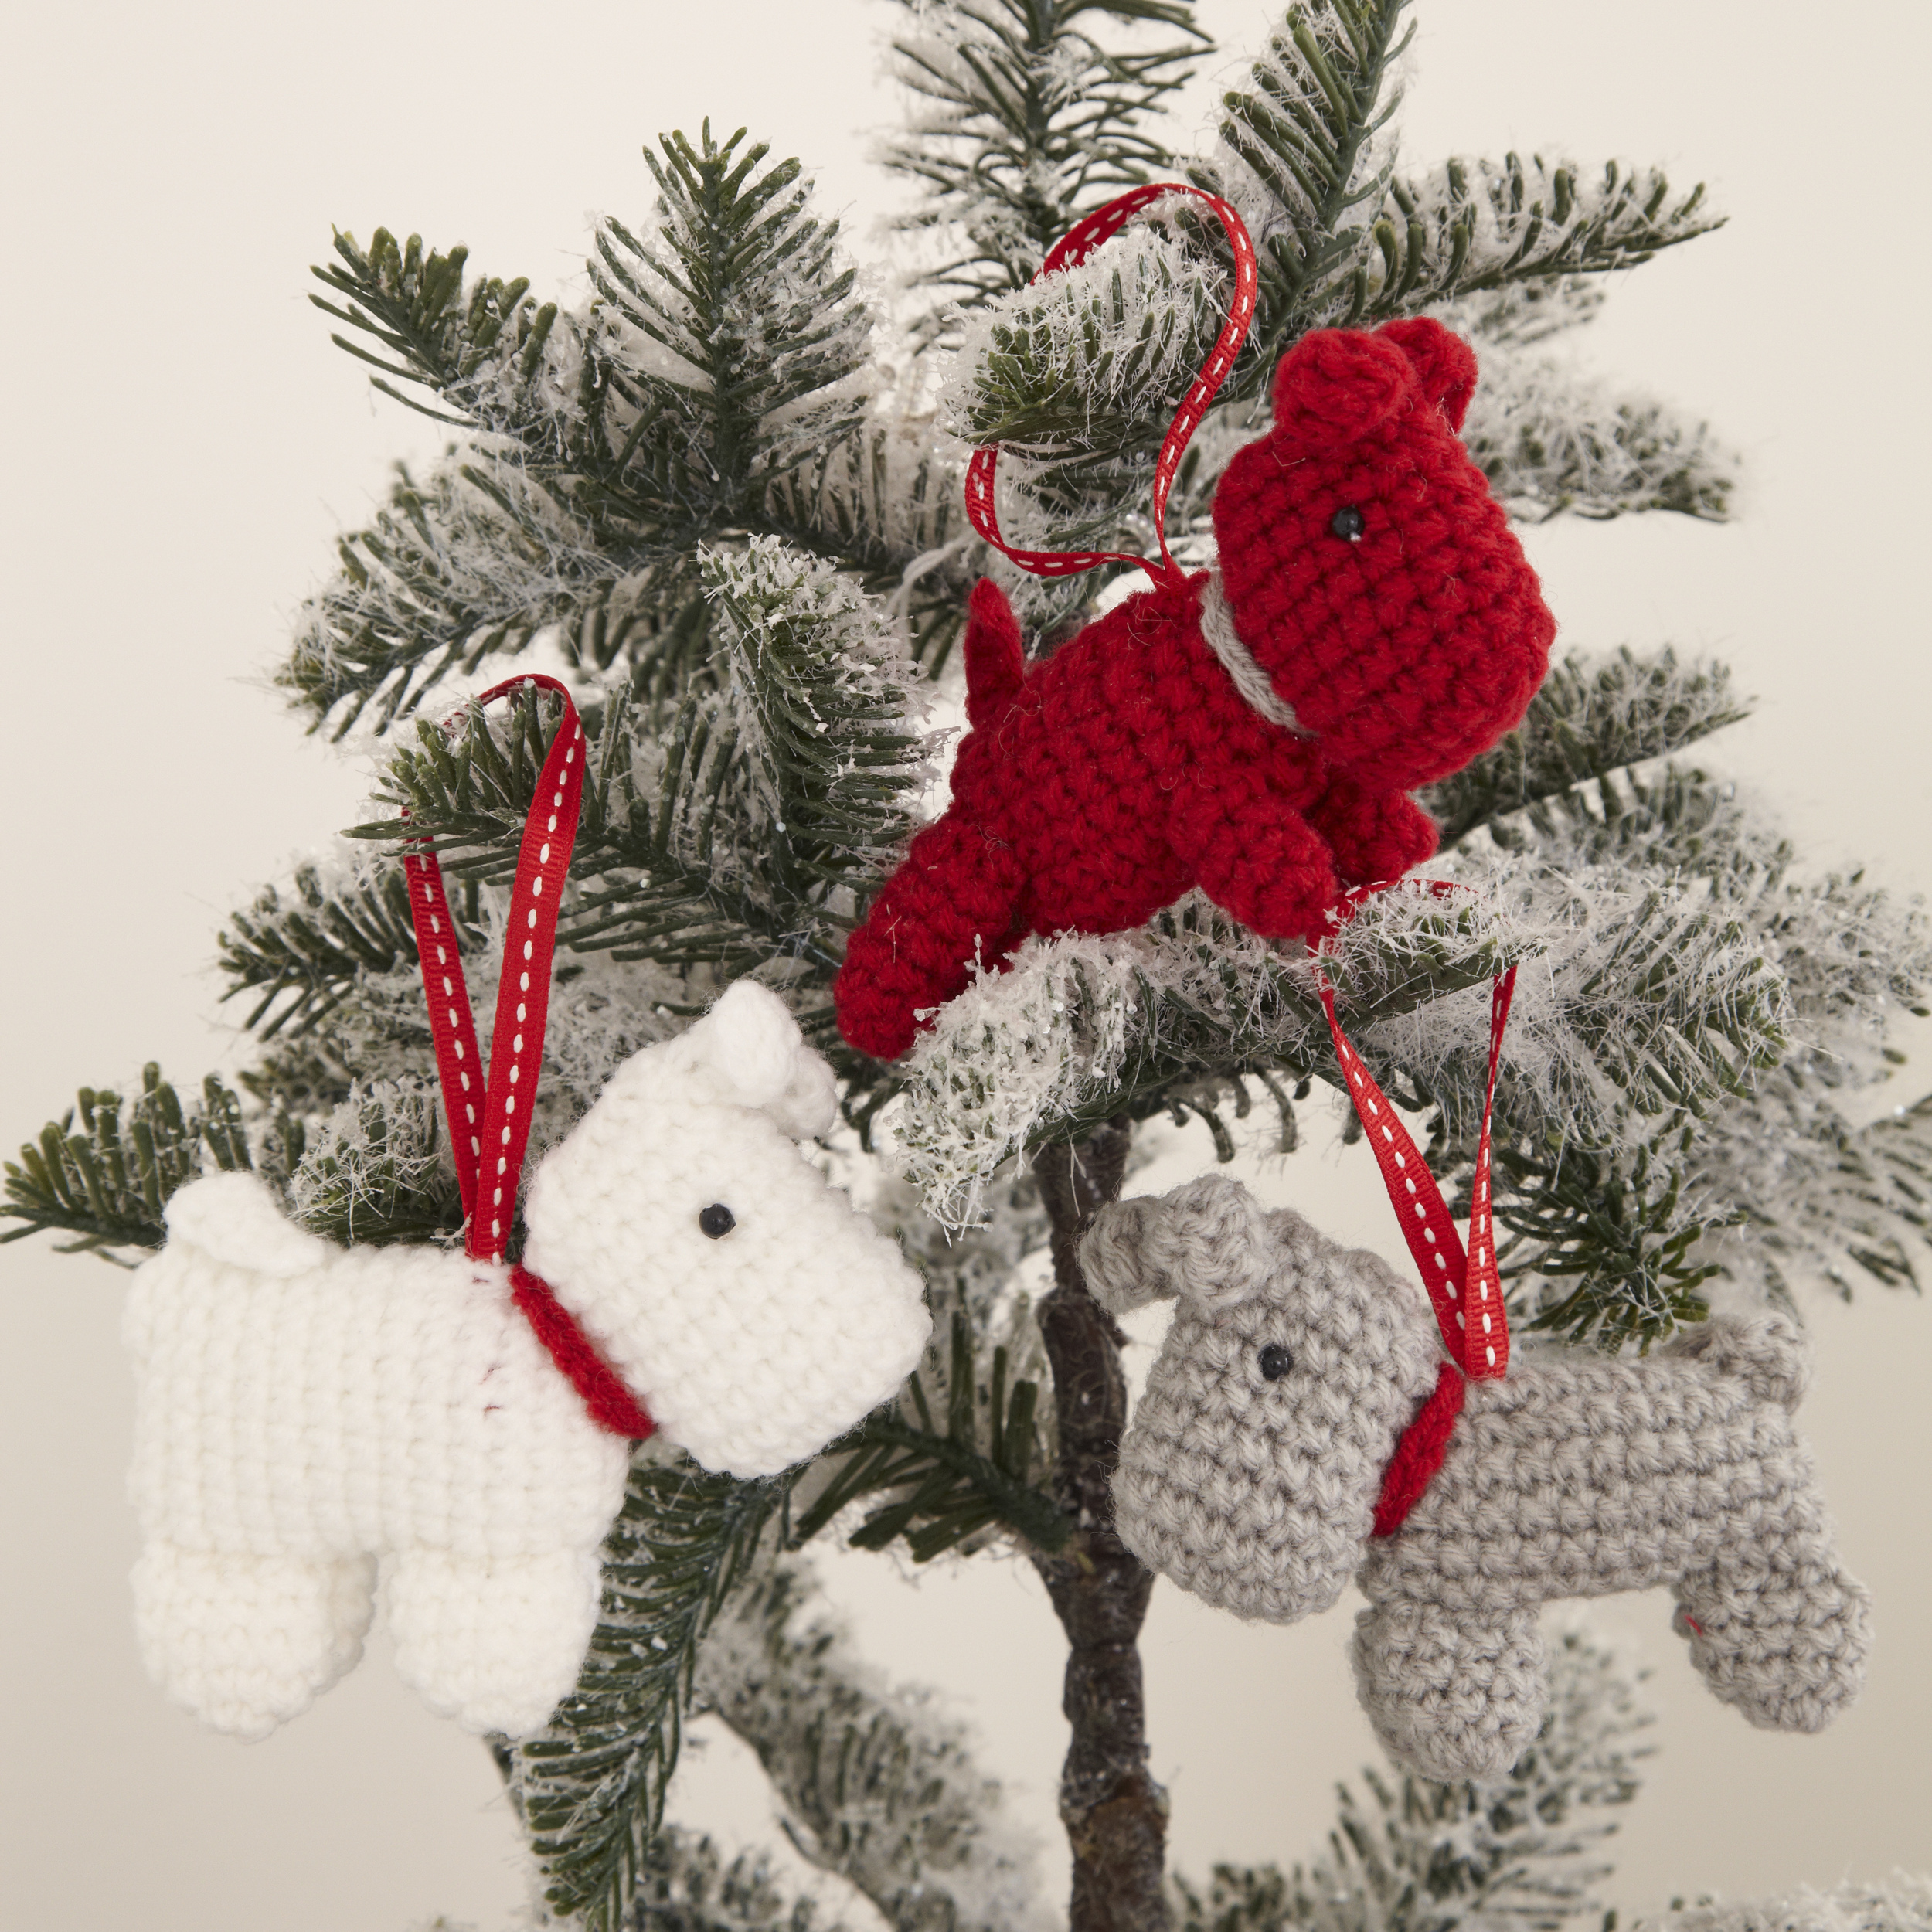 John Lewis Snowman Knitting Pattern : Knitted Christmas decorations are a thing now - MyDaily UK